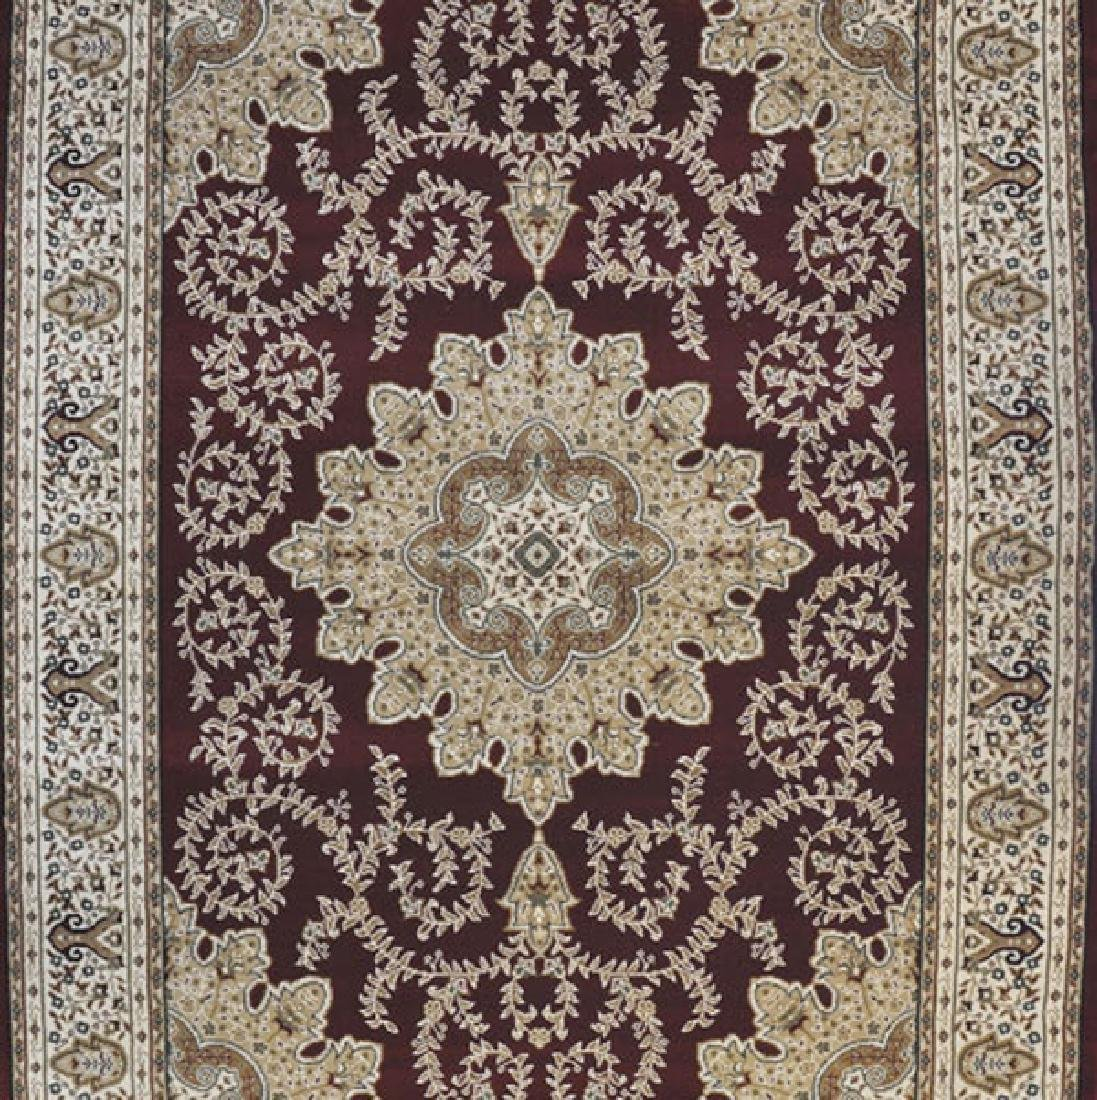 Extremely High Quality 5'3'' x 7'2'' Rug Never Been